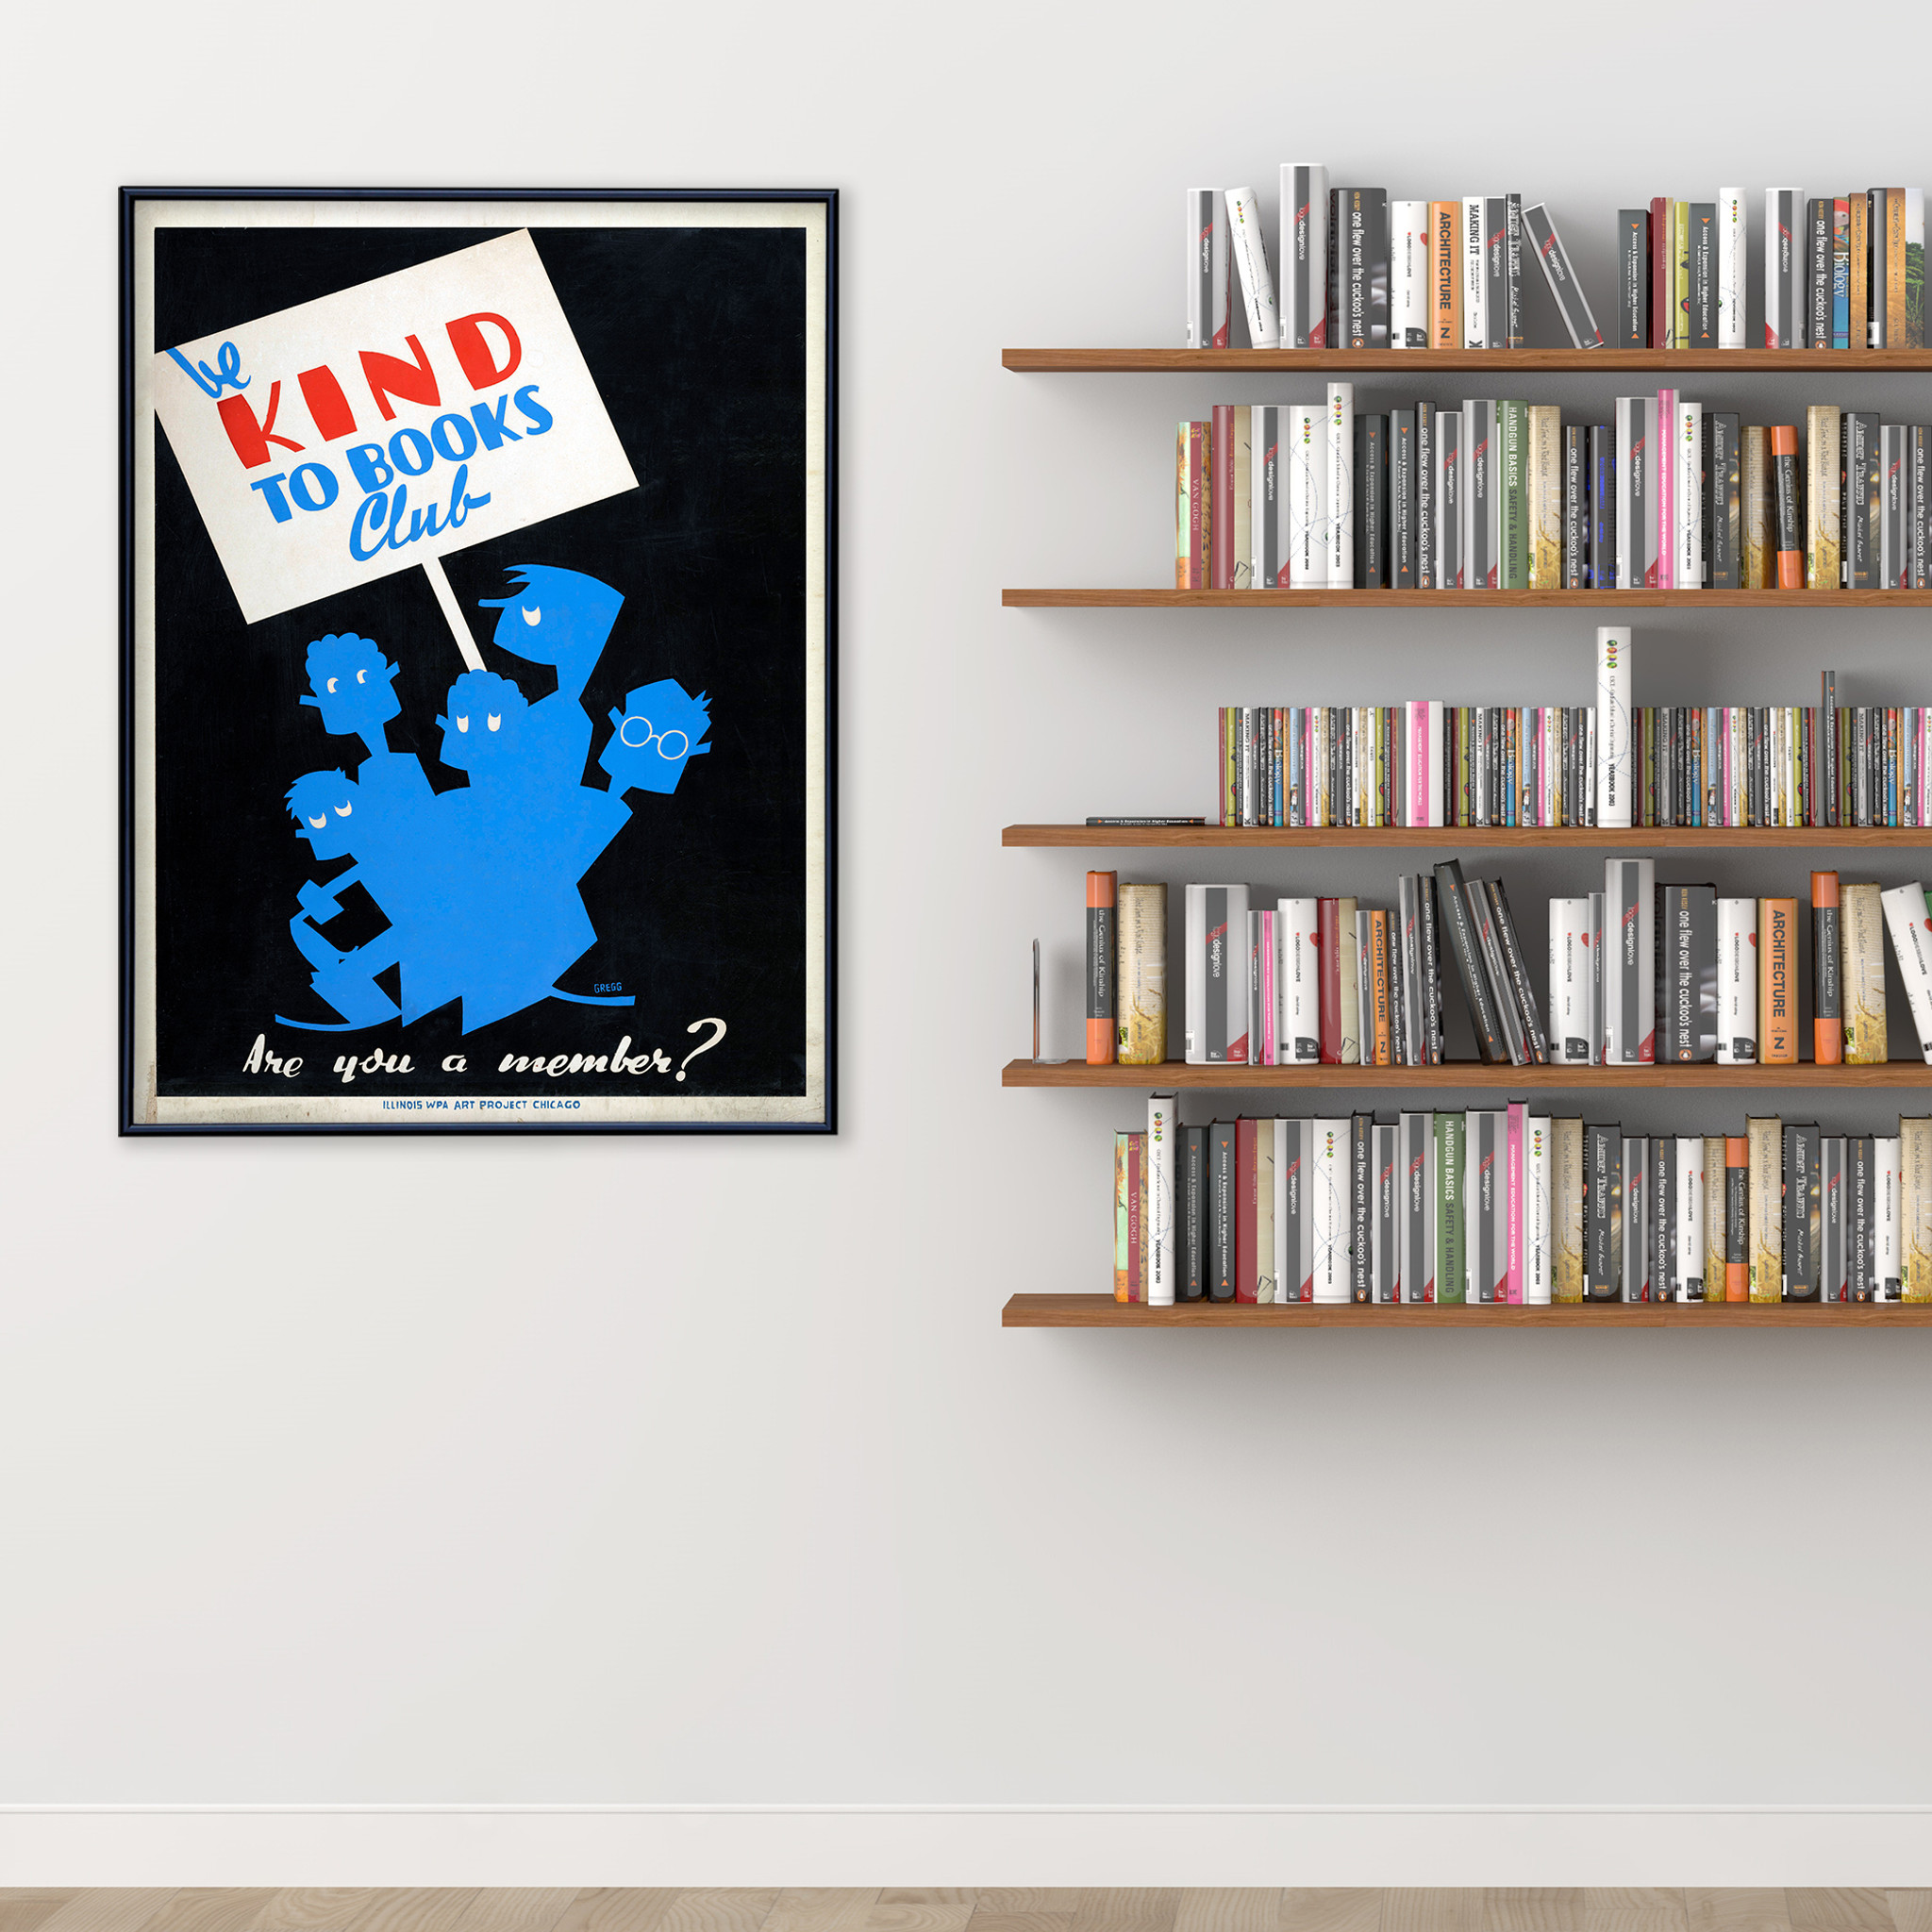 Home Office Club Be Kind To Books Club Print Fine Art Paper Laminated Or Framed Multiple Sizes For Library Home Office Or School